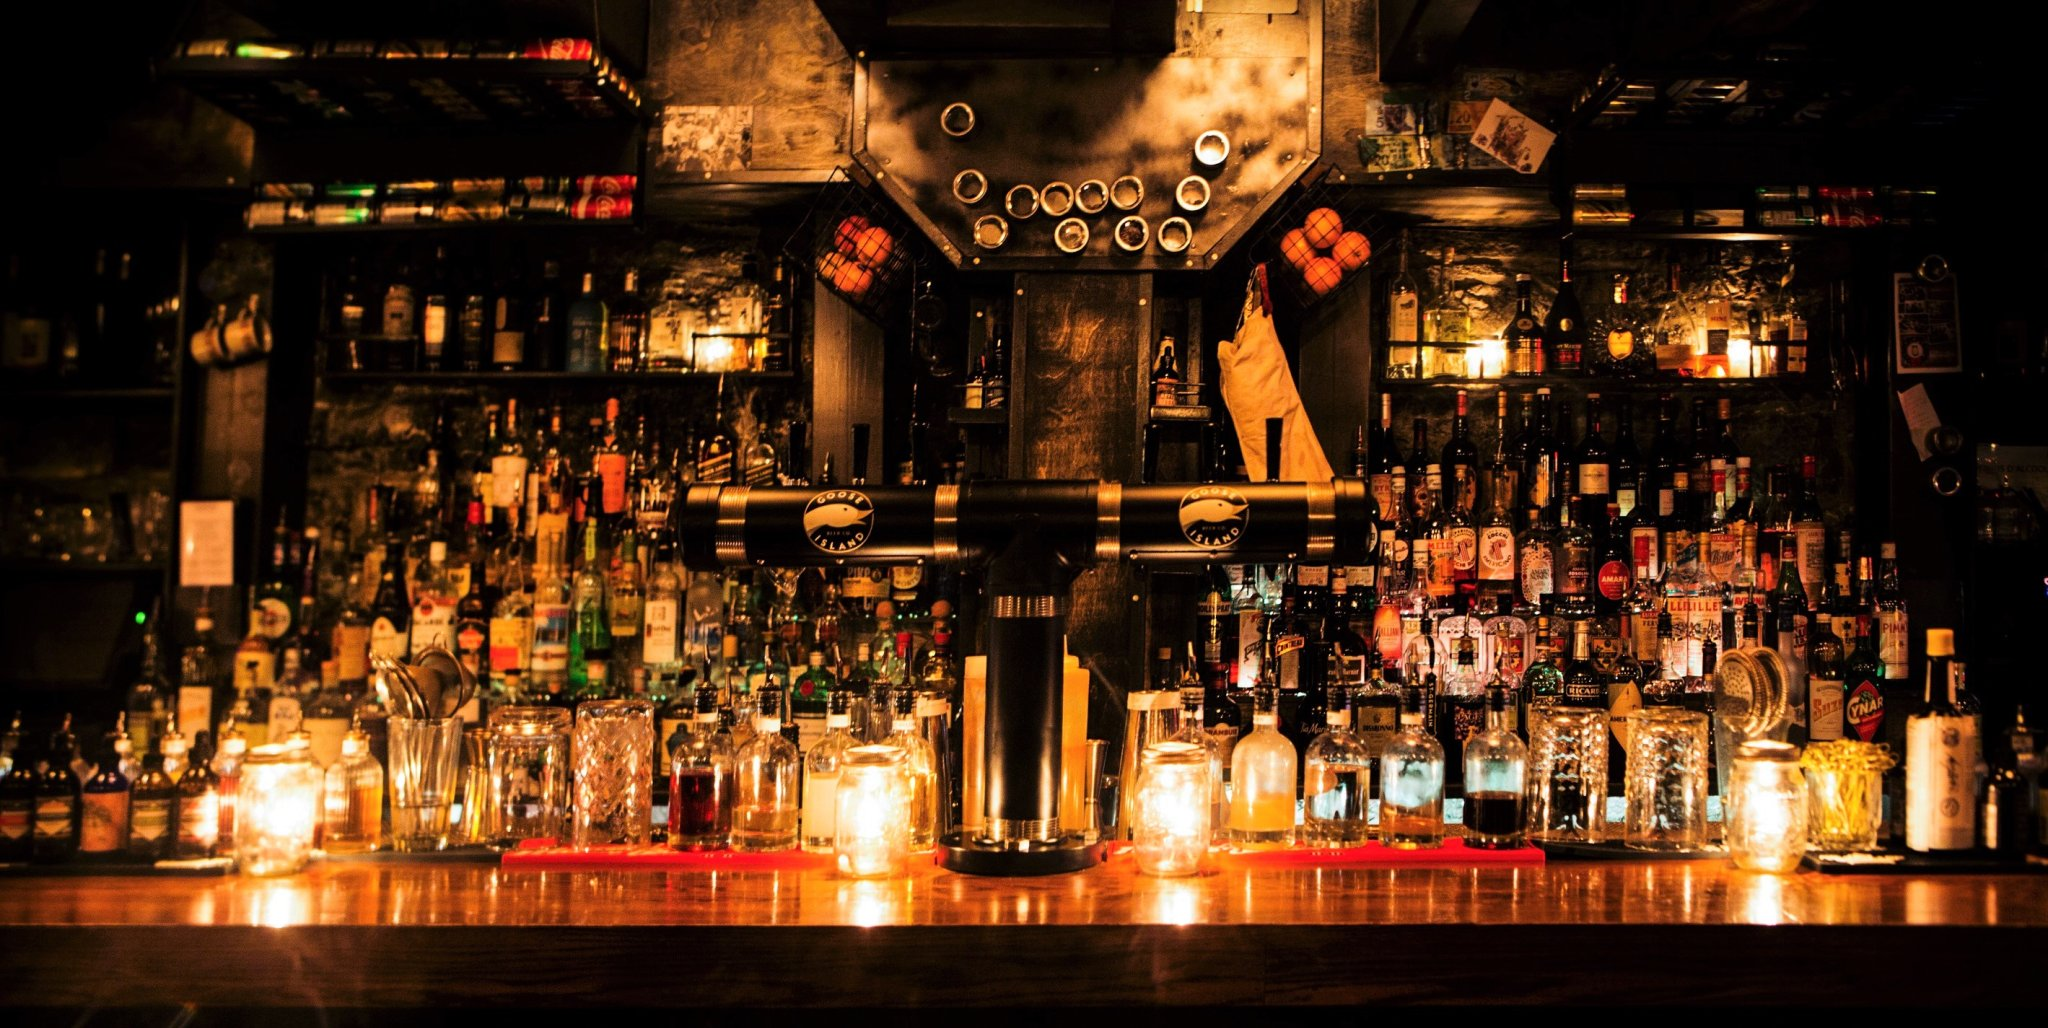 Where to Find Montreal's Hidden Bars and Secret Speakeasies